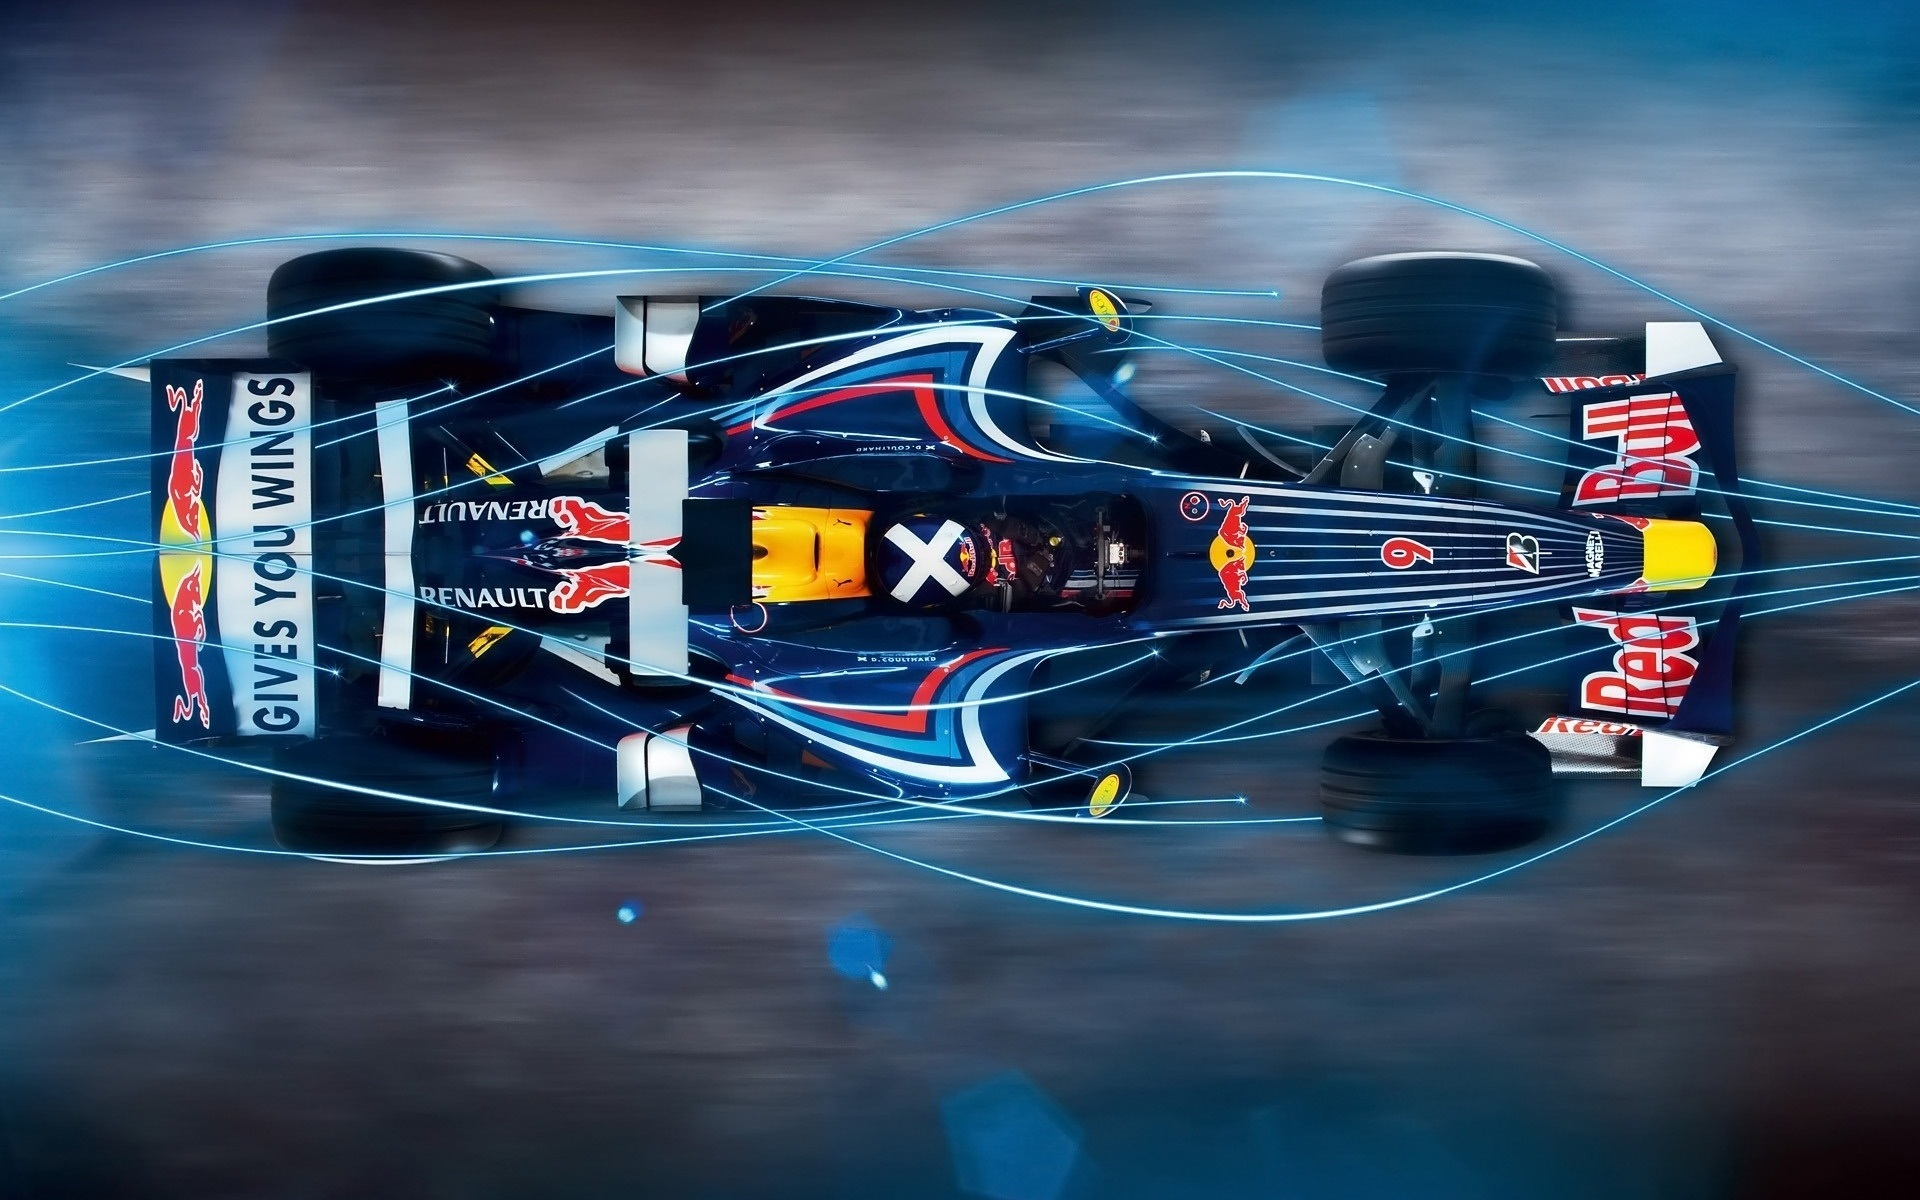 Wallpaper Blue Light Red Bull F1 Car 1920x1440 Hd Picture Image